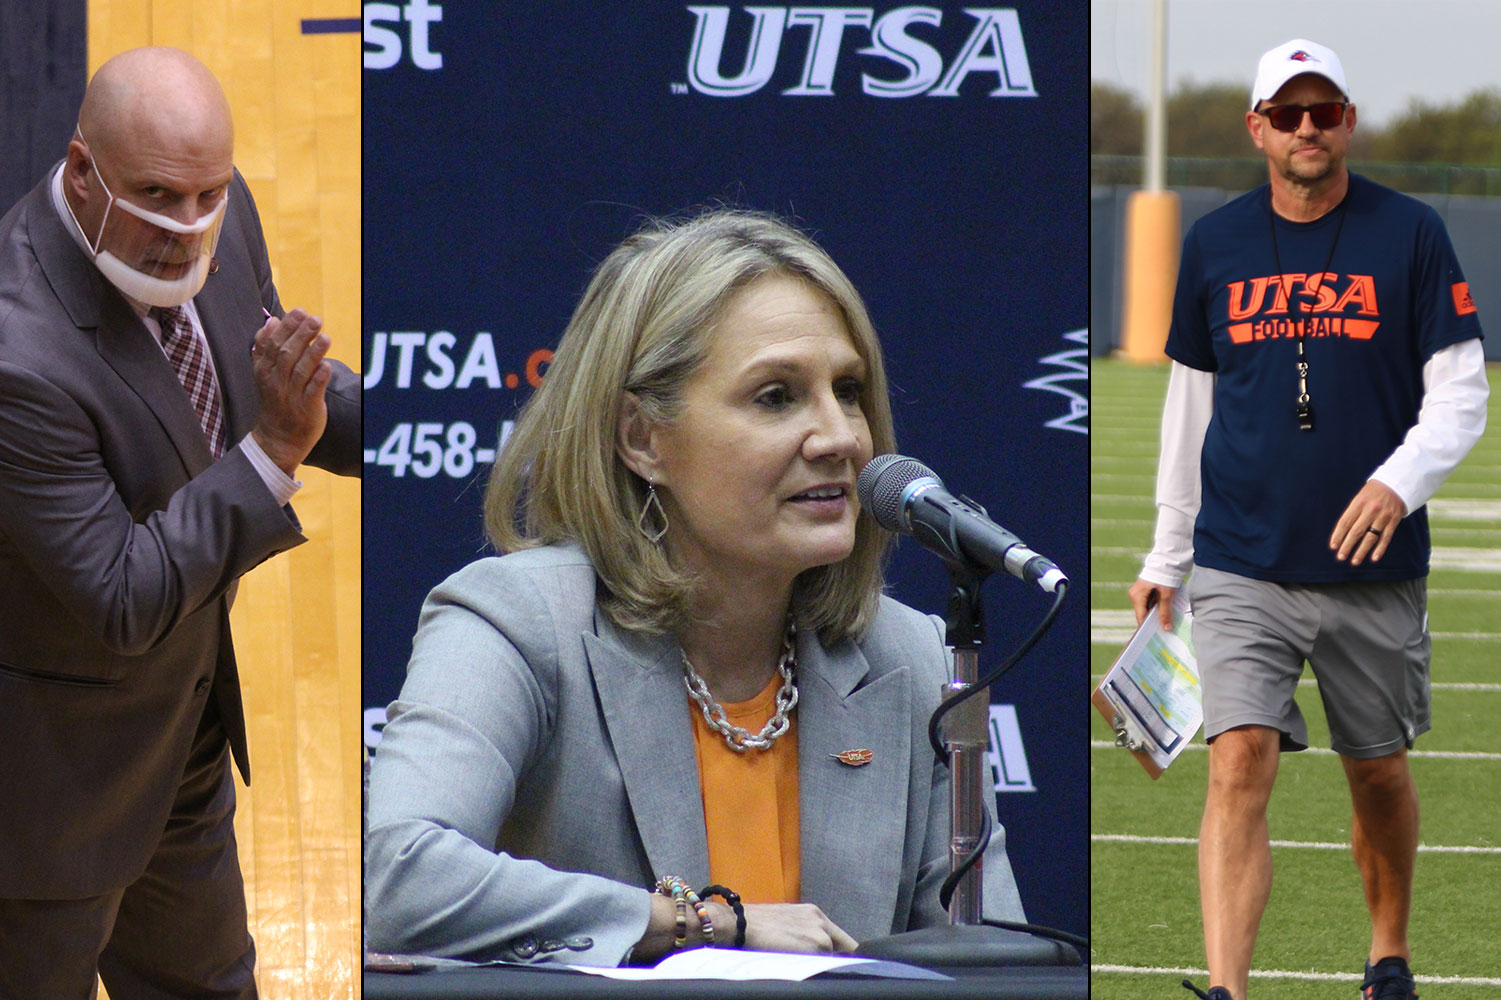 Steve Henson, Karen Aston and Jeff Traylor have all established themselves as adept recruiters not just at the high school level but also on the transfer market in their careers. With the new transfer rules on the horizon it will be crucial for them and the other head coaches at UTSA to adapt to the changes quickly.